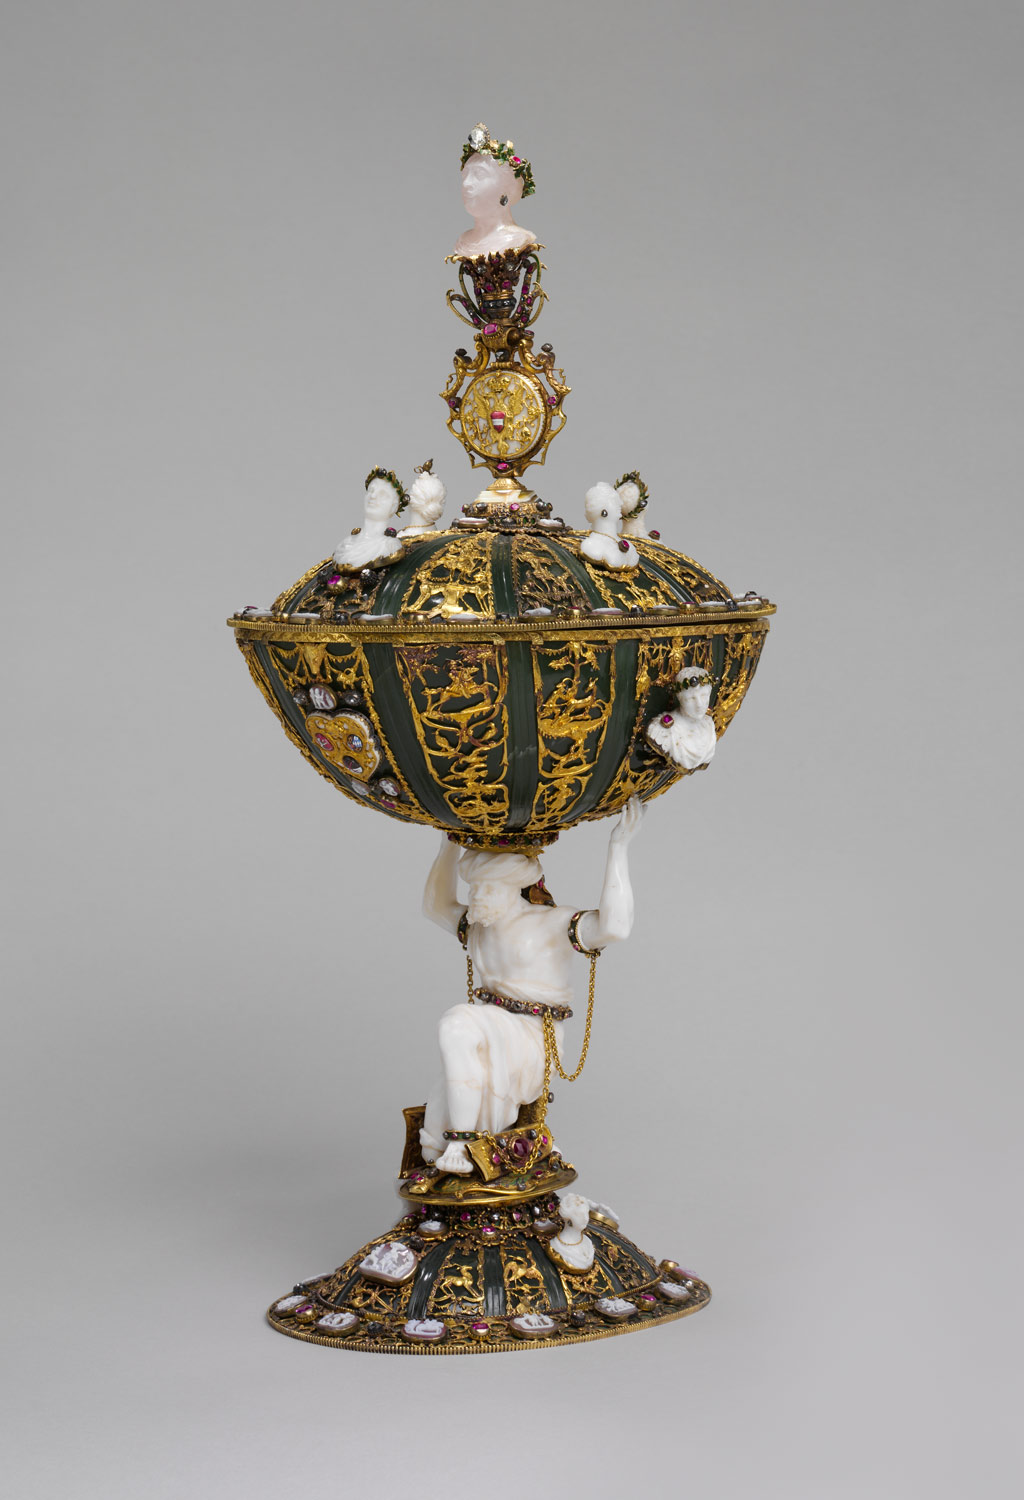 Standing Cup and Cover Supported by an Enchained Turk